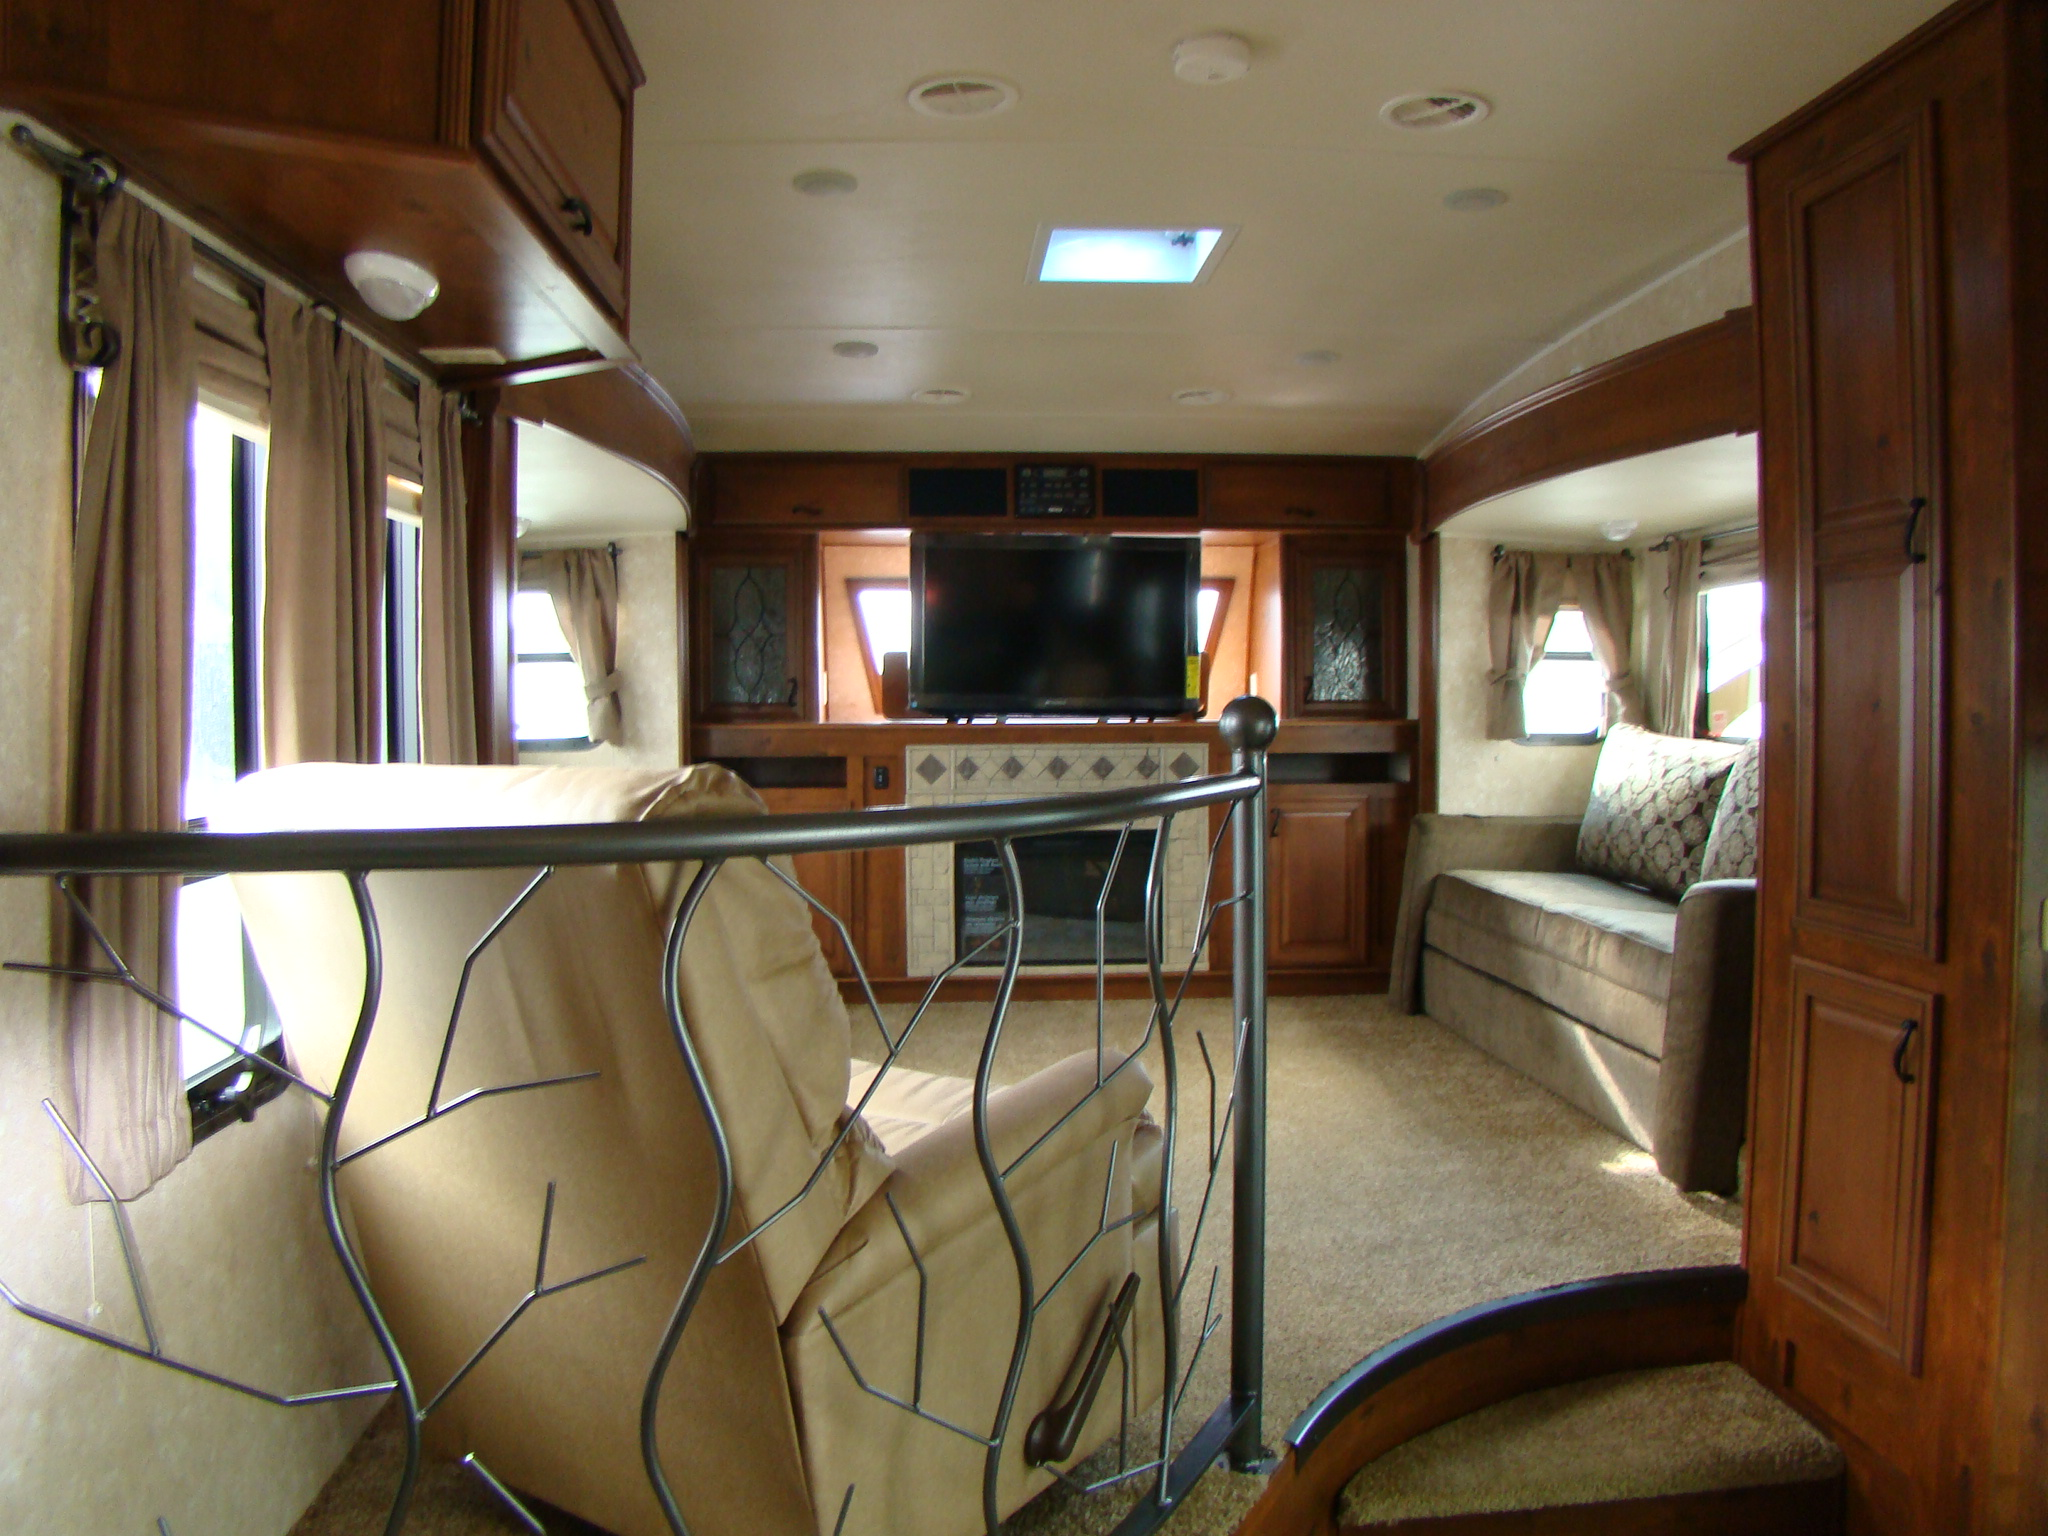 5th wheel camper rving is easy at lerch rv 73890